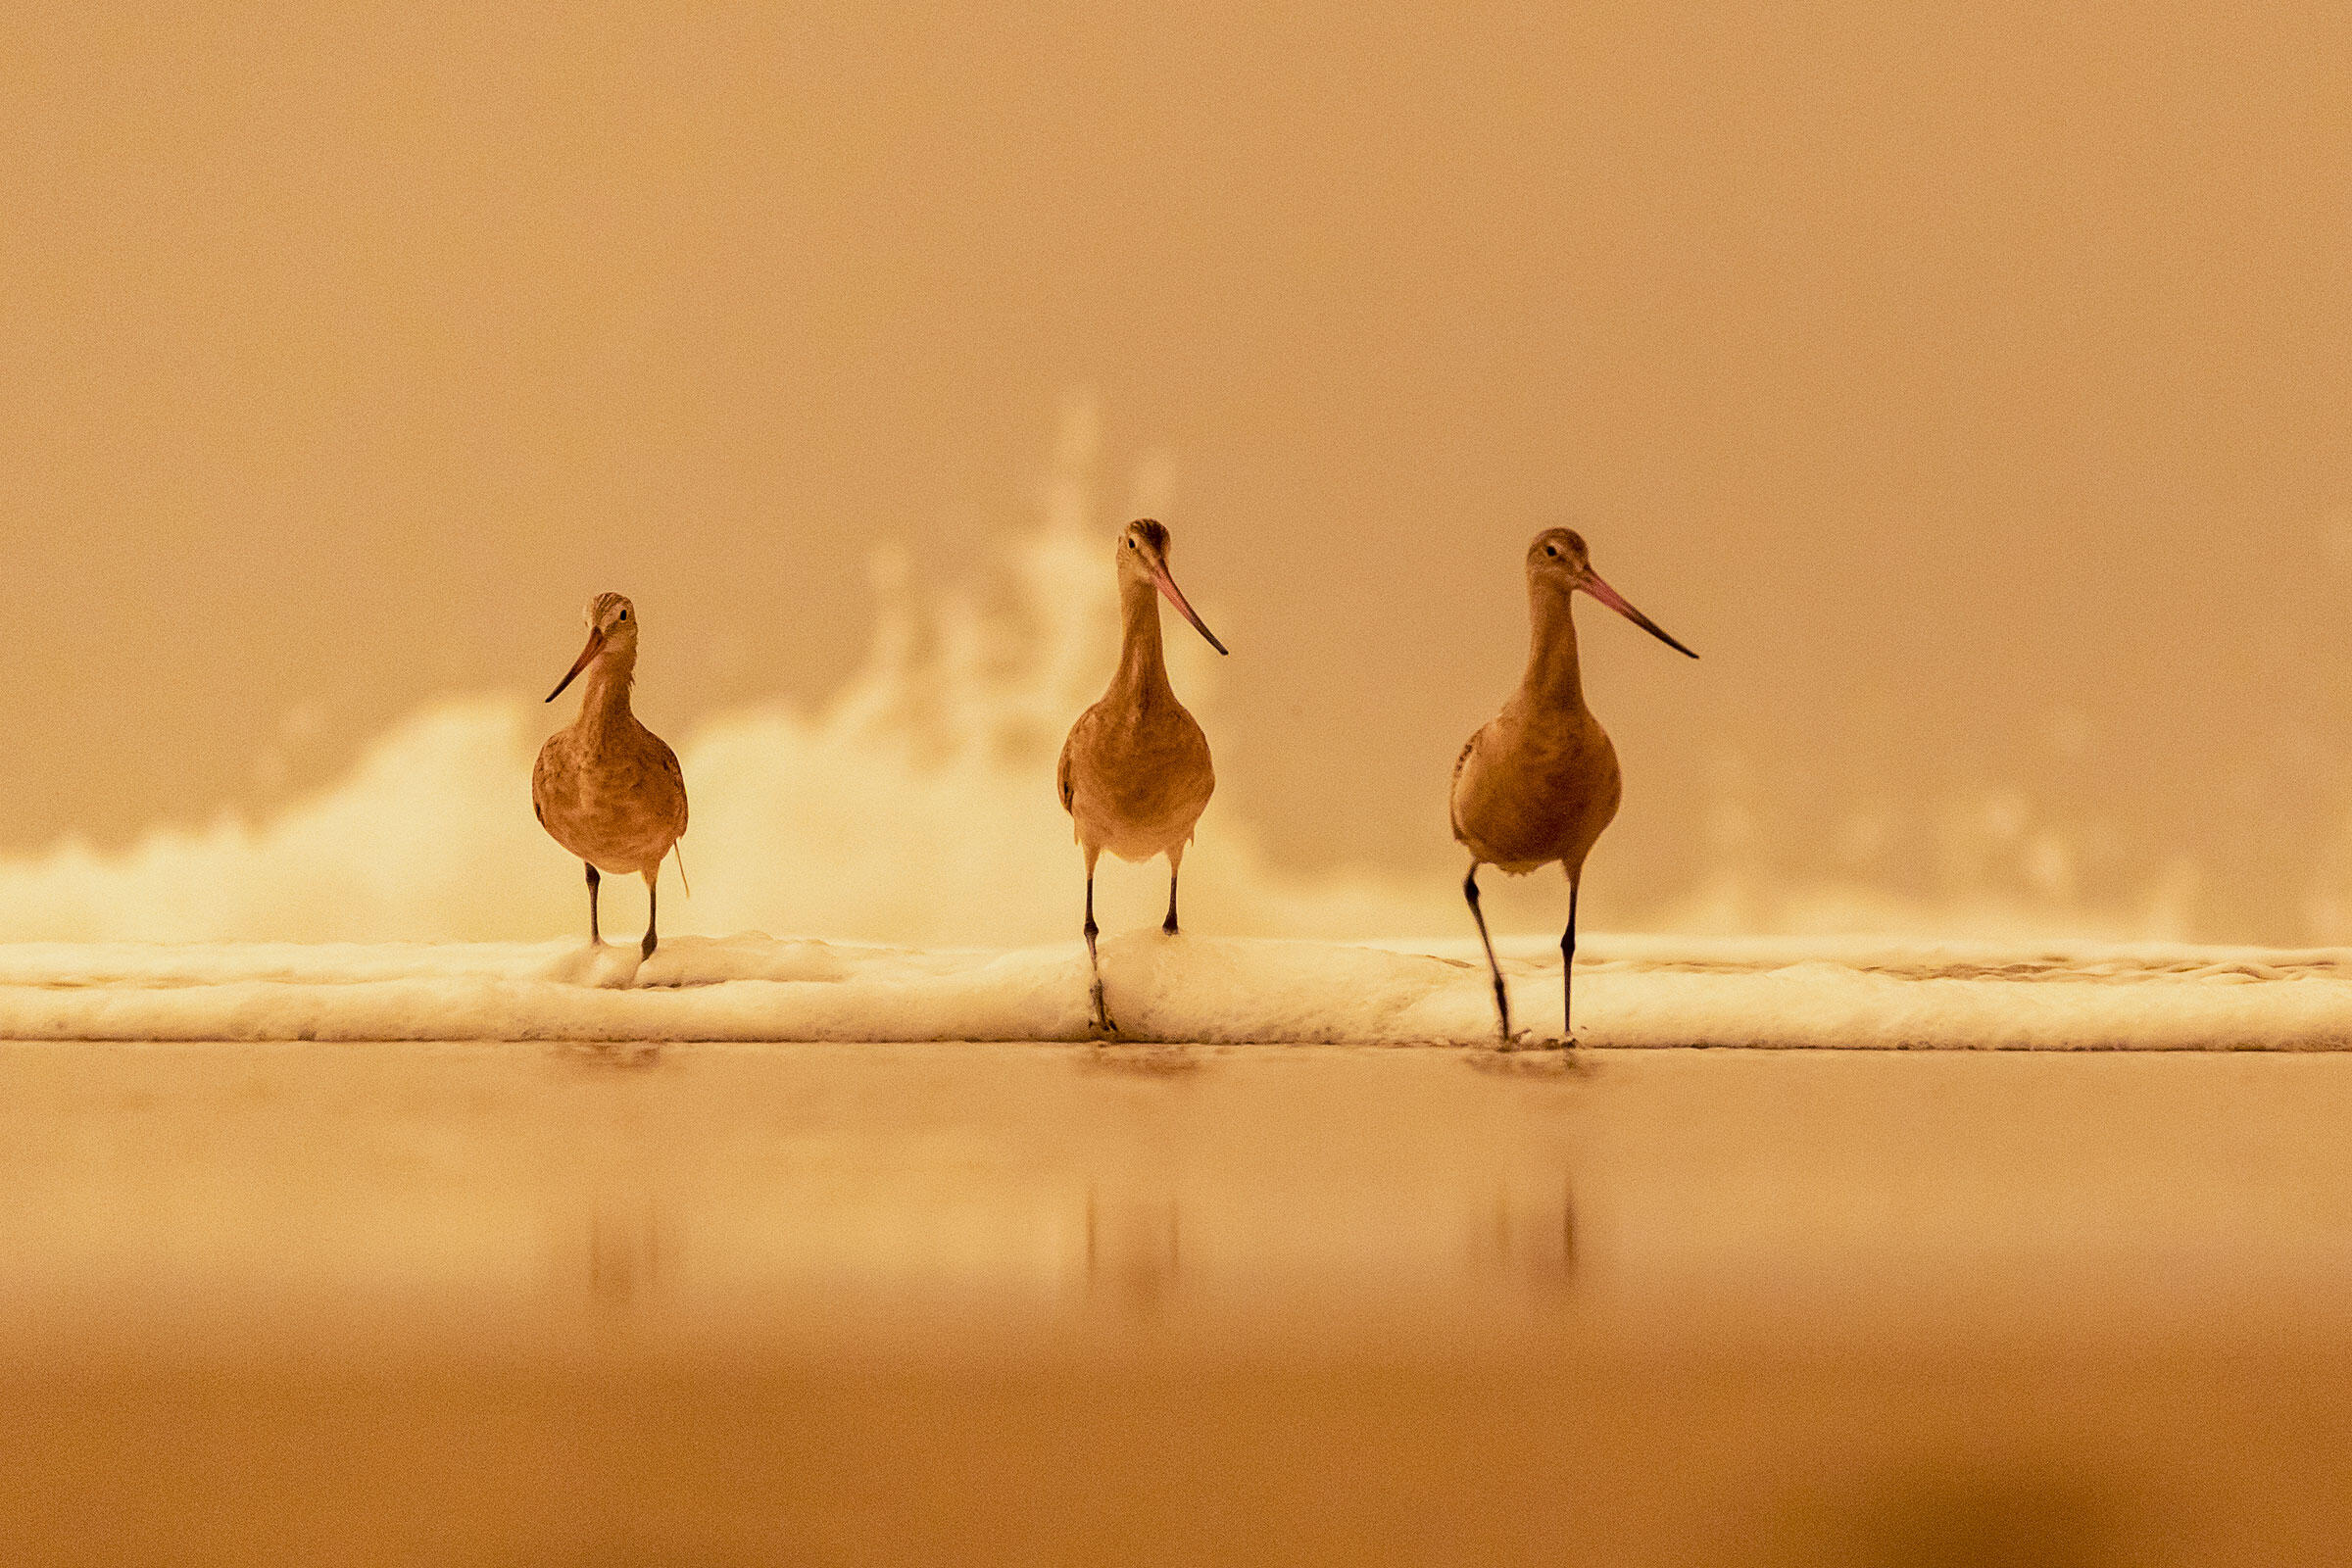 Three Marbled Godwits, which are large shorebirds, walk in the surge. The image takes on an orange hue, including the birds, due to wildlife smoke. The birds look purposeful and determined as they stride toward the camera.